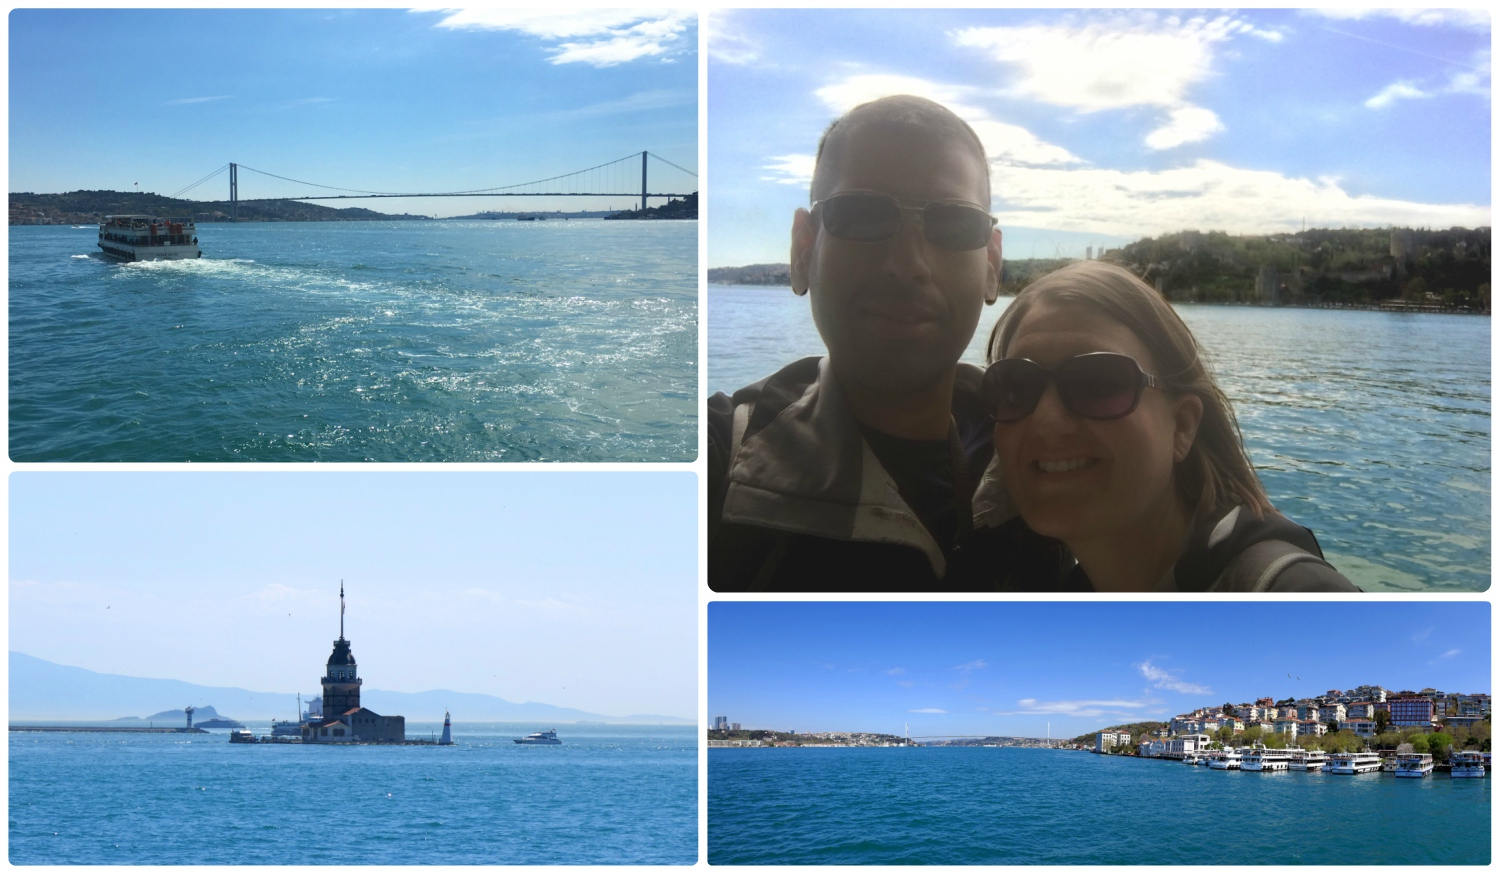 Clockwise (from the top): Cruise boat on the Bosphorus, us on the cruise, view of the Bosphorus, Maiden's Tower.